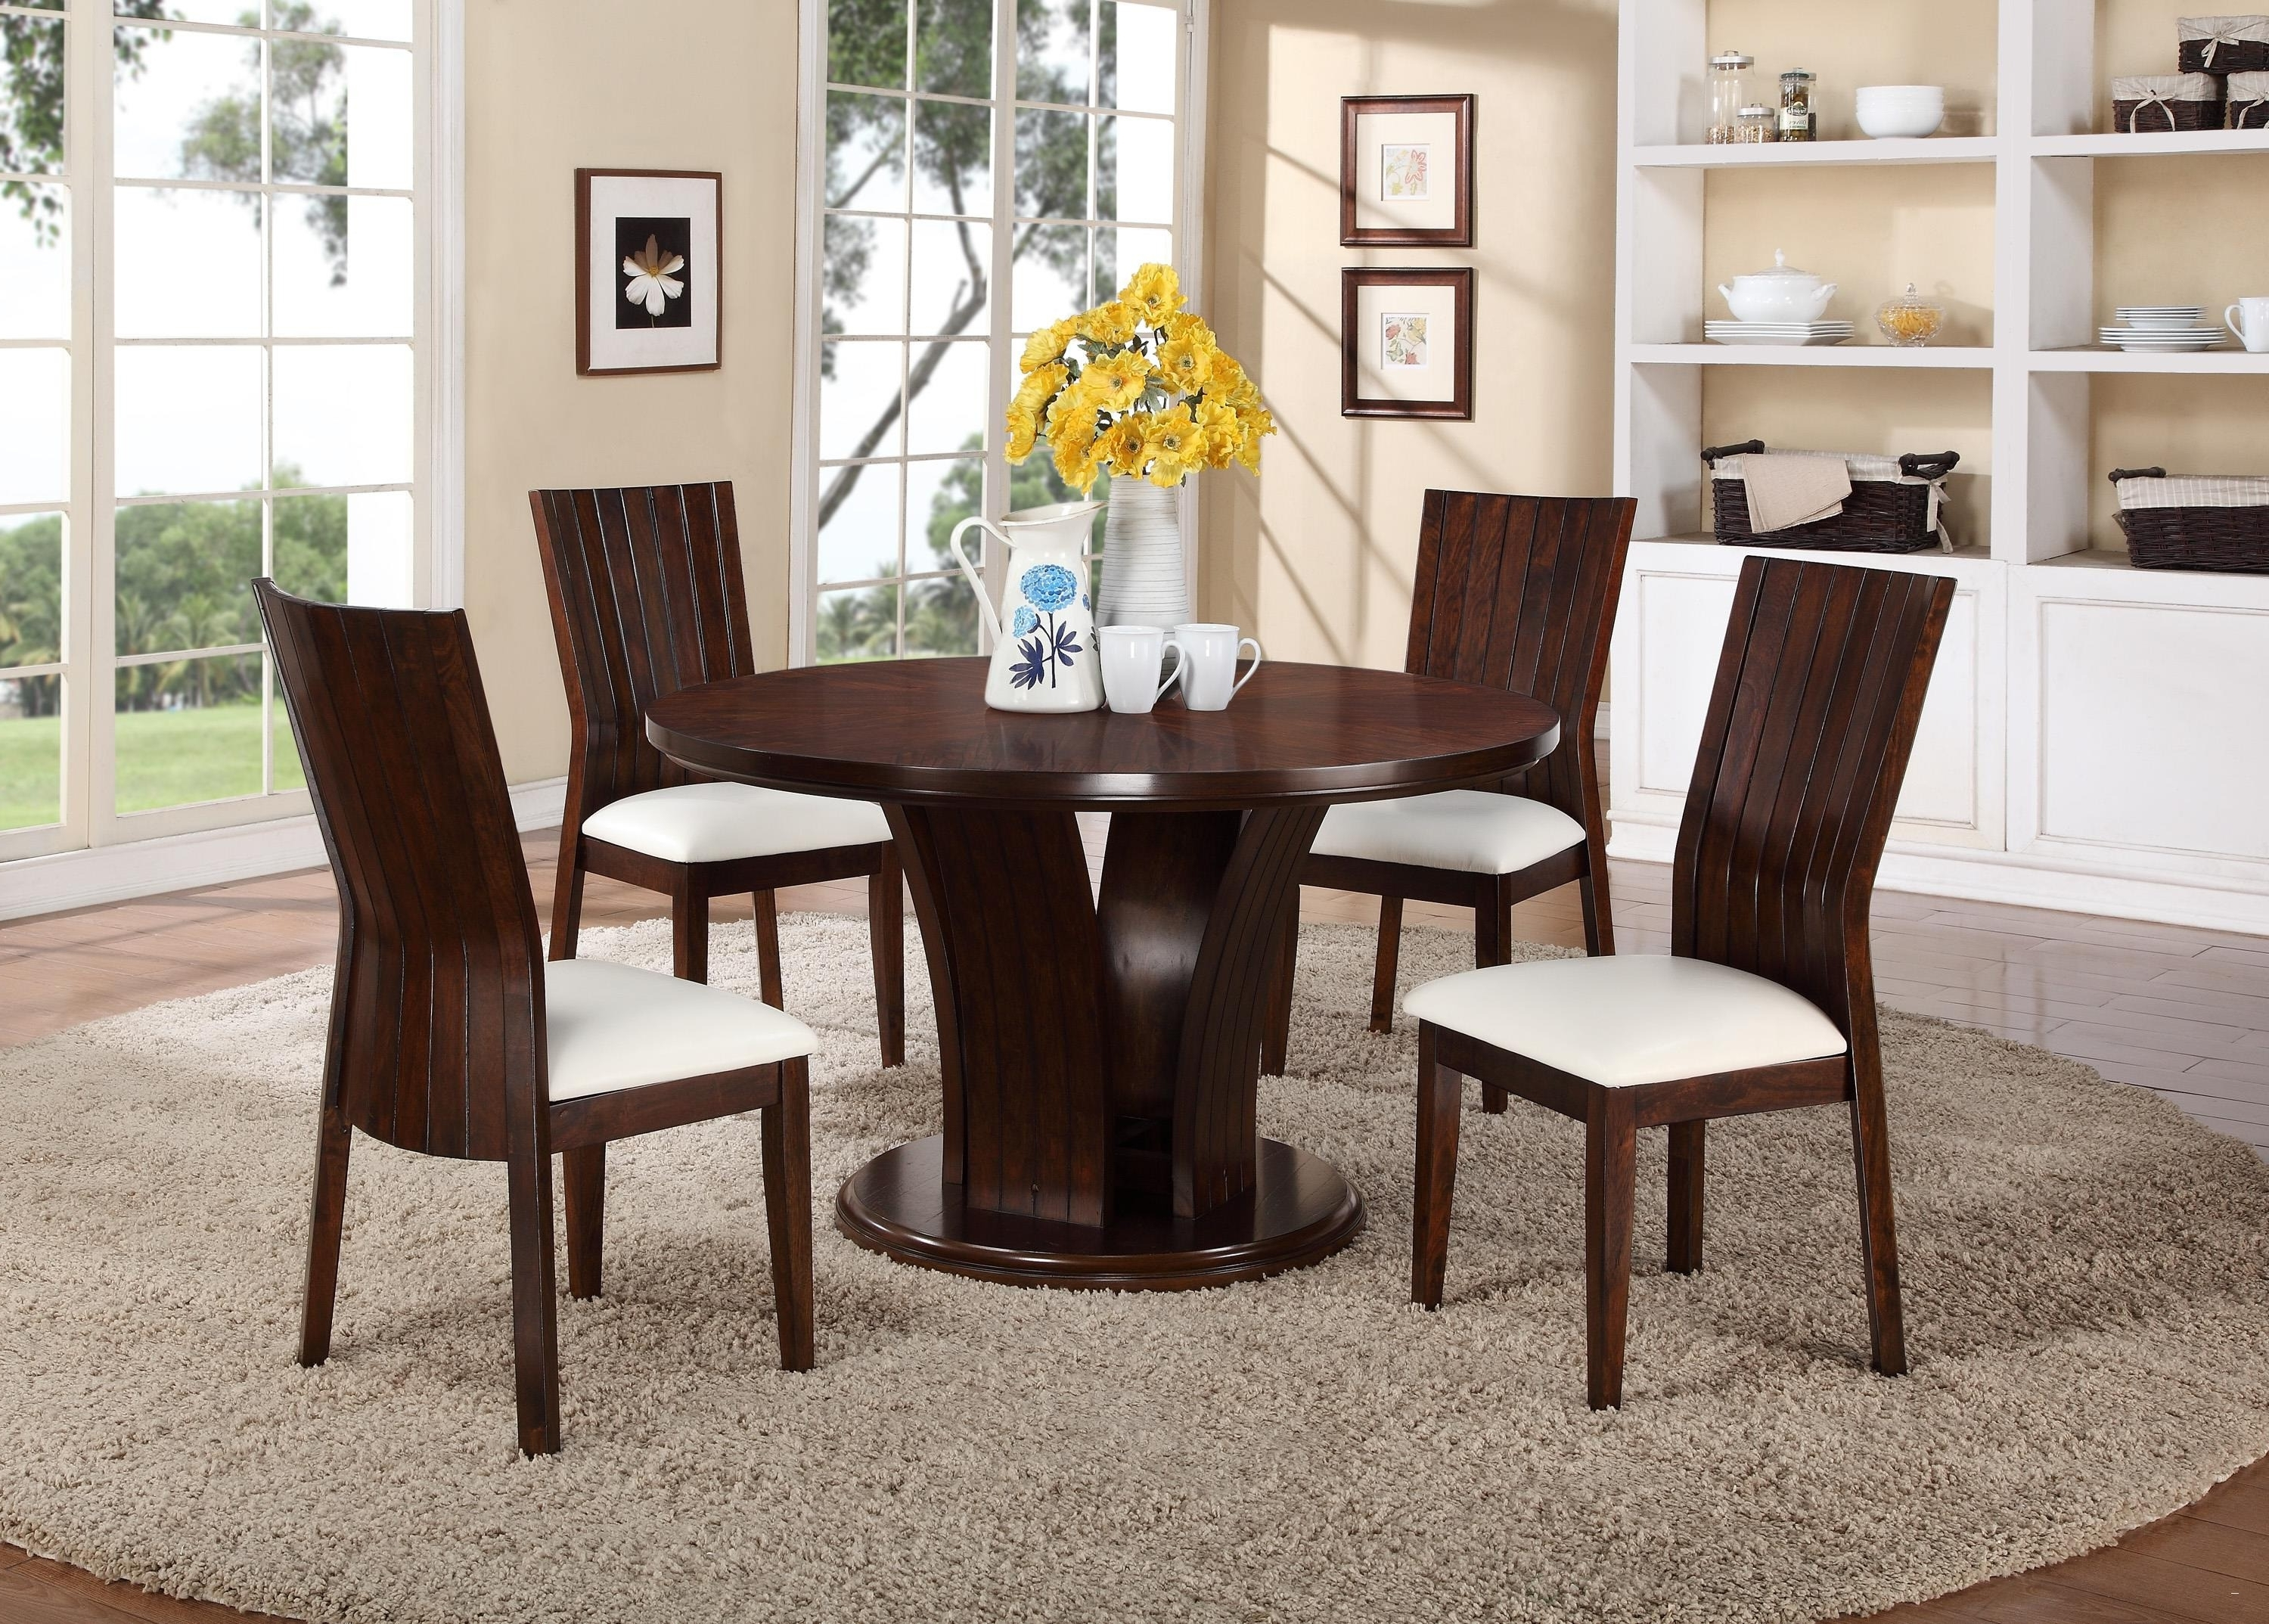 Jaxon Grey 5 Piece Round Extension Dining Sets With Upholstered Chairs In Recent Ashton Round Pedestal Dining Table Elegant Kitchen Dining Area (View 19 of 25)